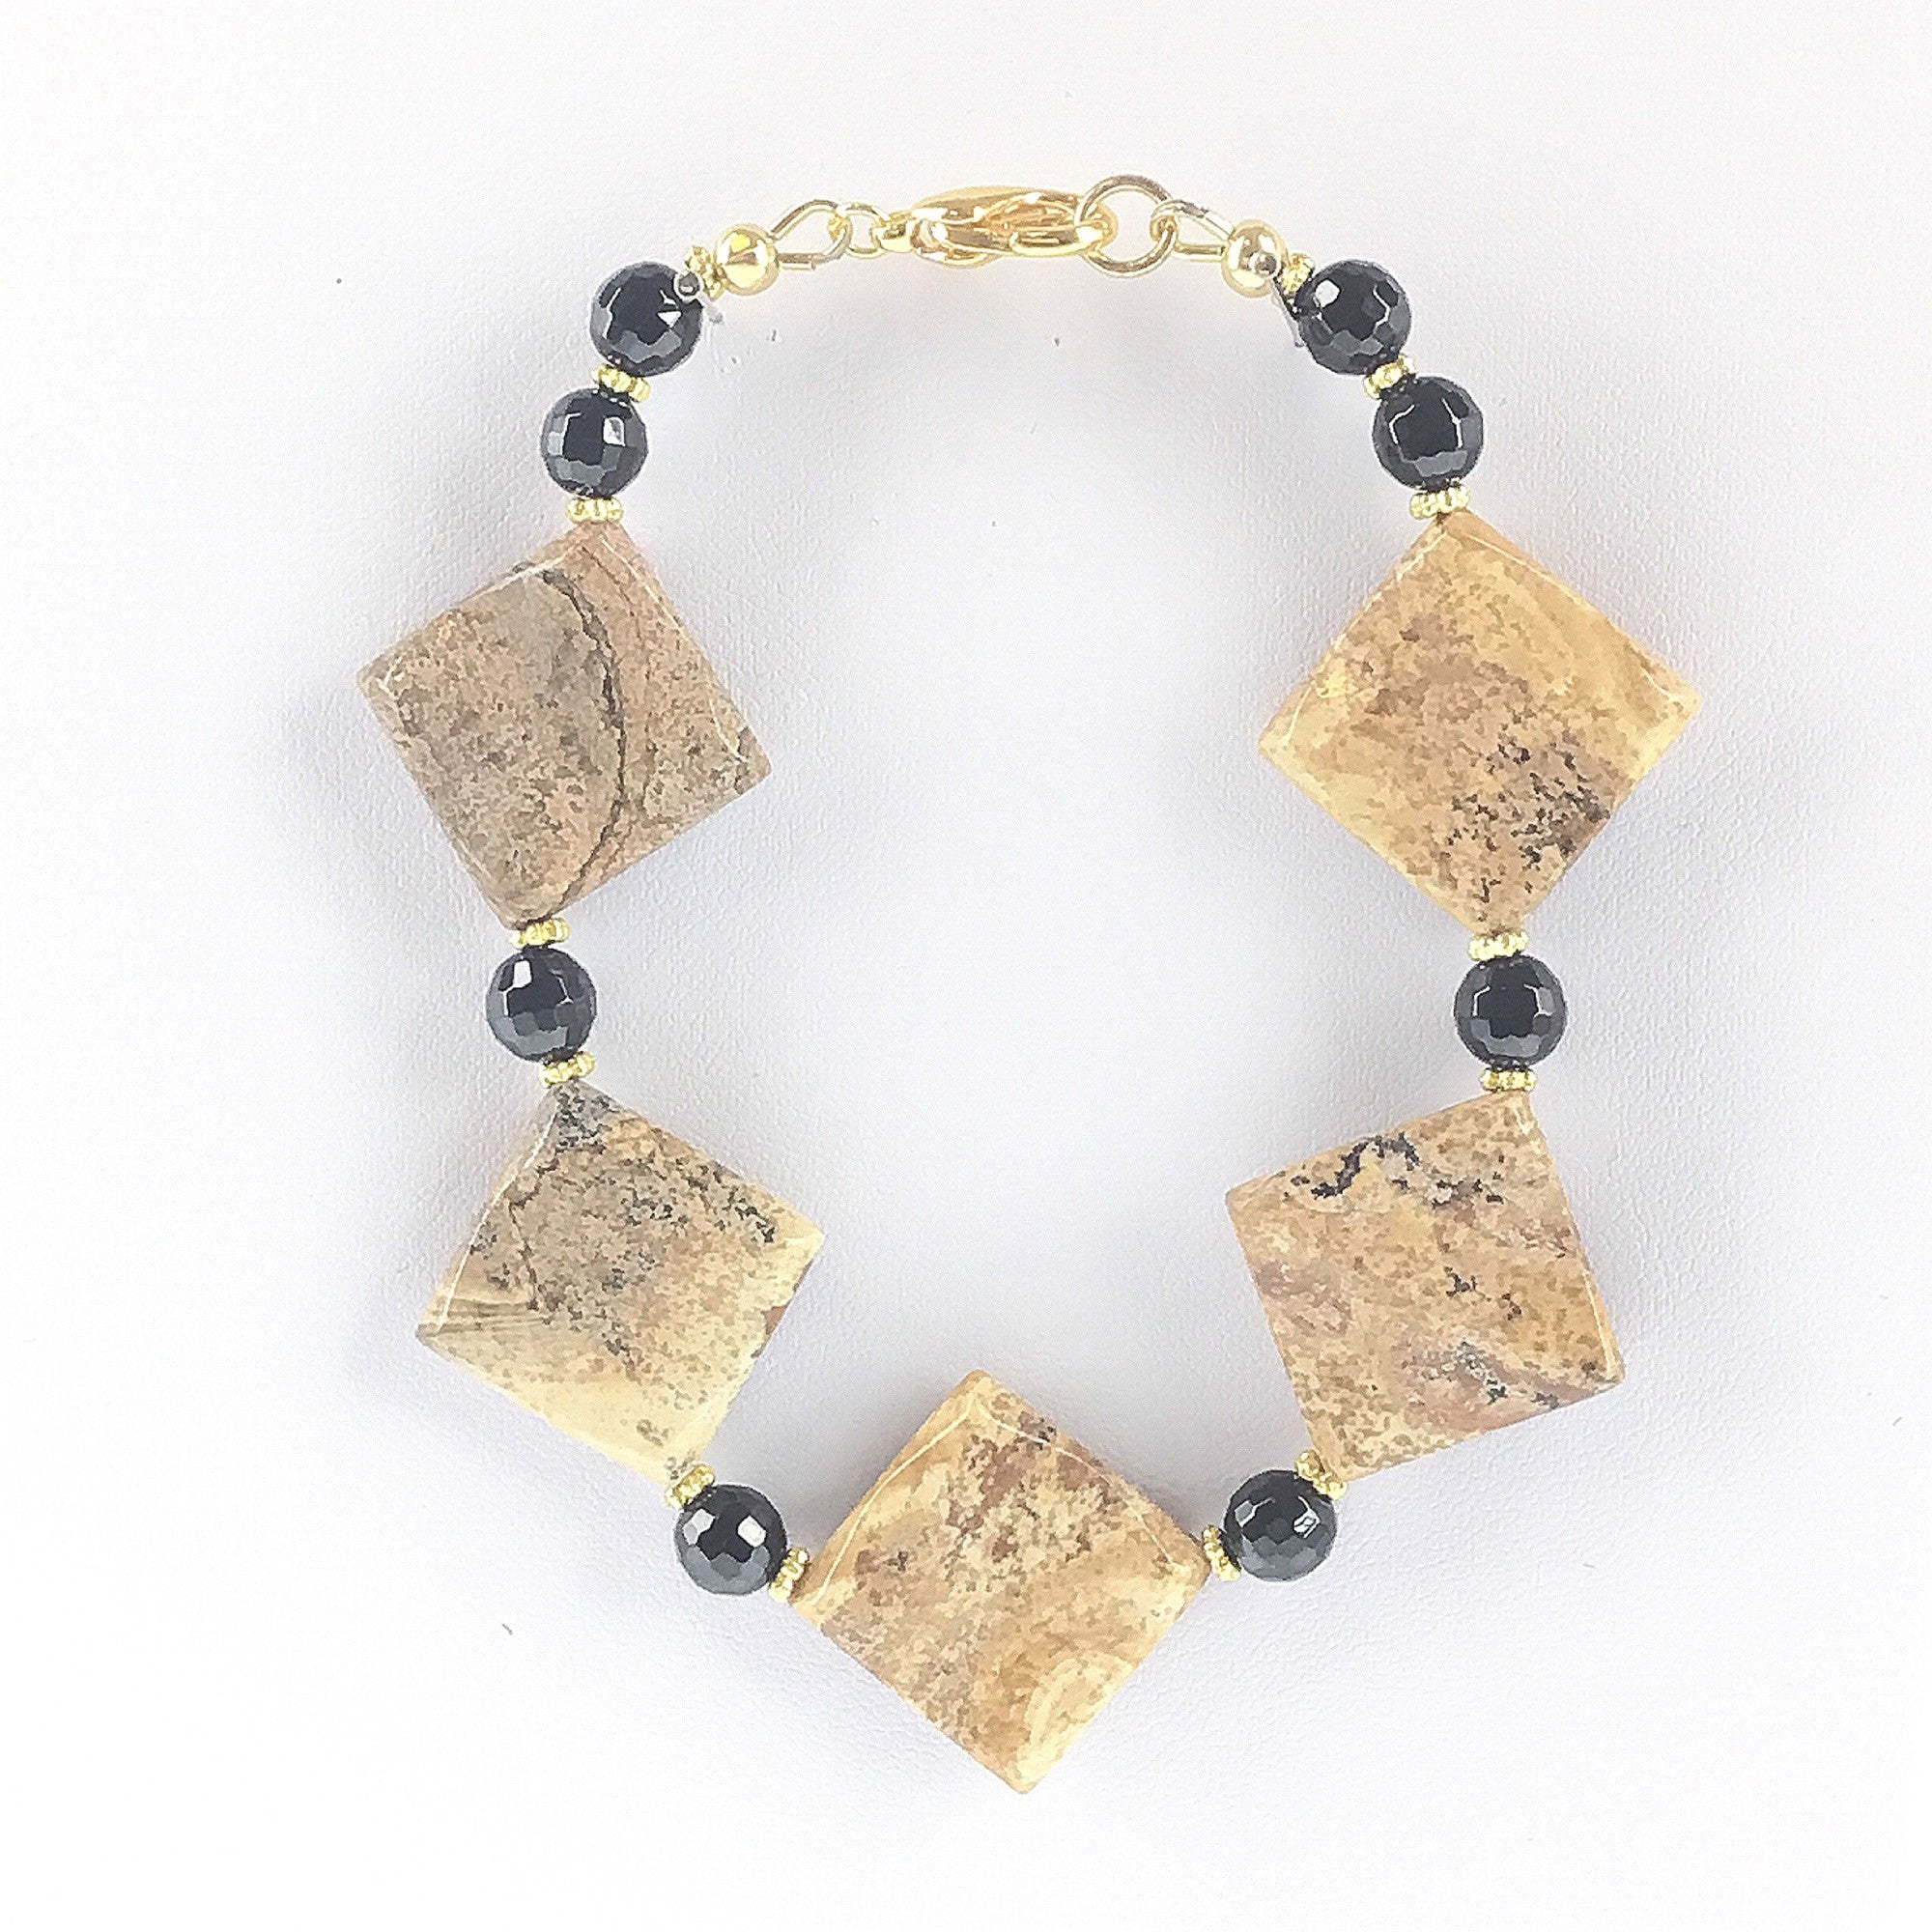 Picture Jasper and Black Spinel Bracelet - Real Chic Boutique  - 1